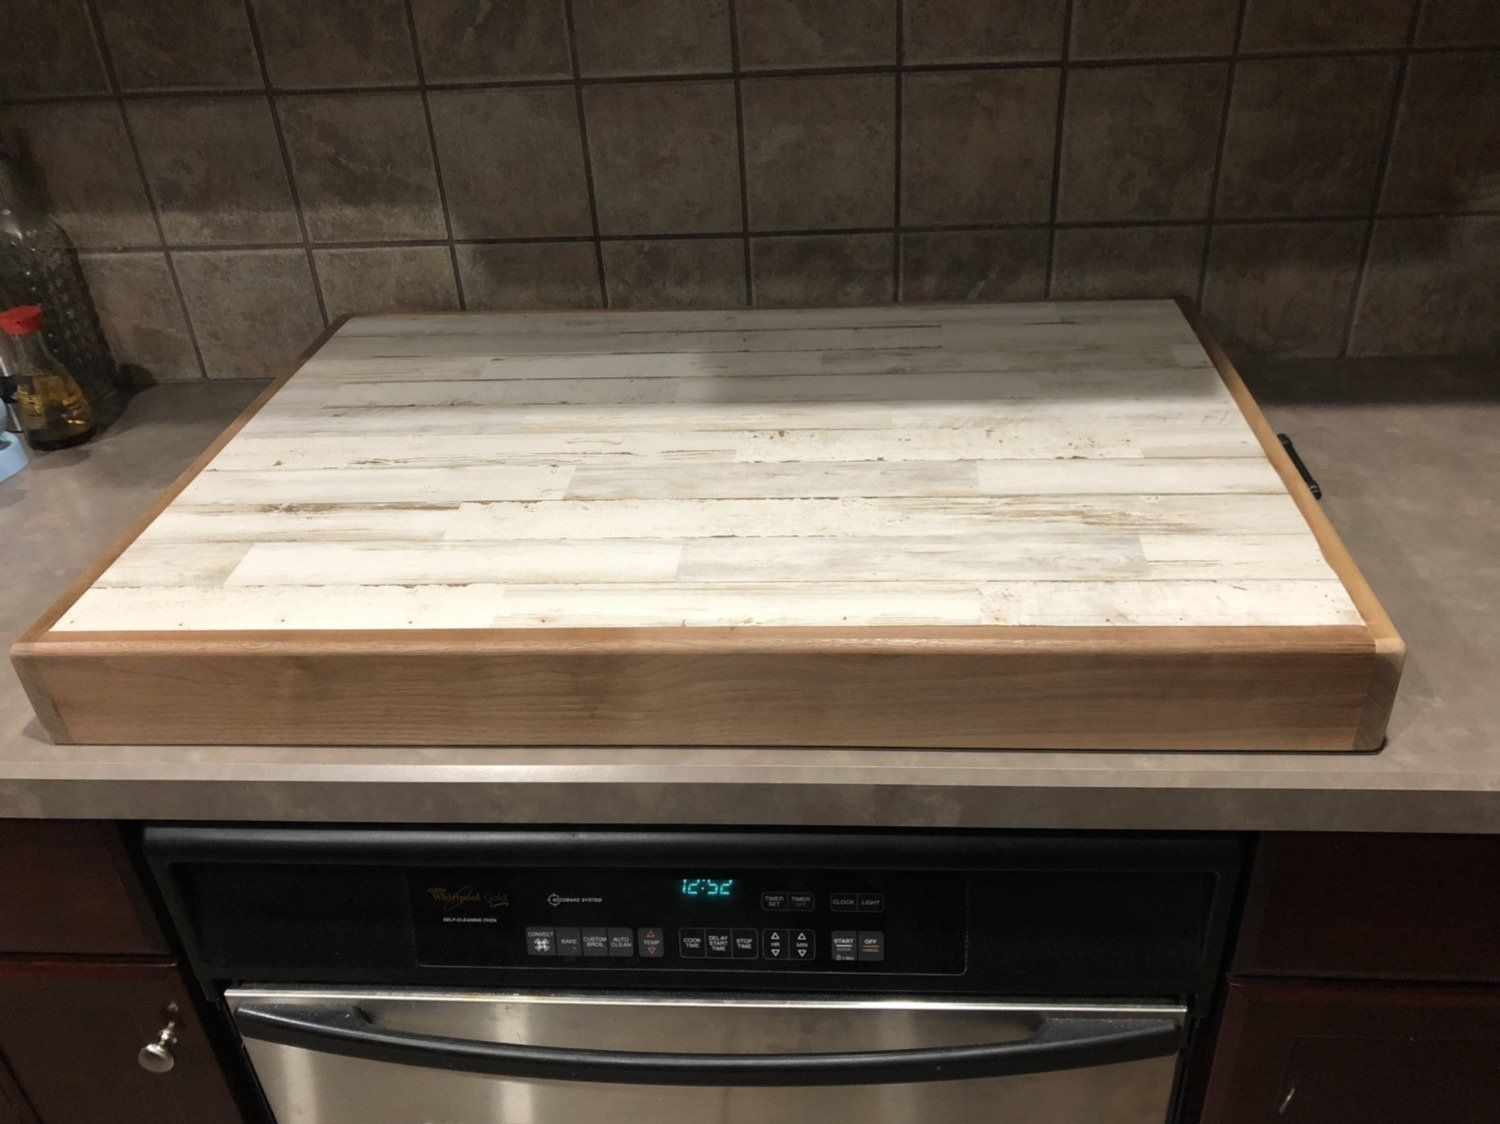 Rustic Wooden Stove Top Cover Counter Extension And Cooktop Etsy In 2020 Wooden Stove Top Covers Stove Cover Stove Top Cover